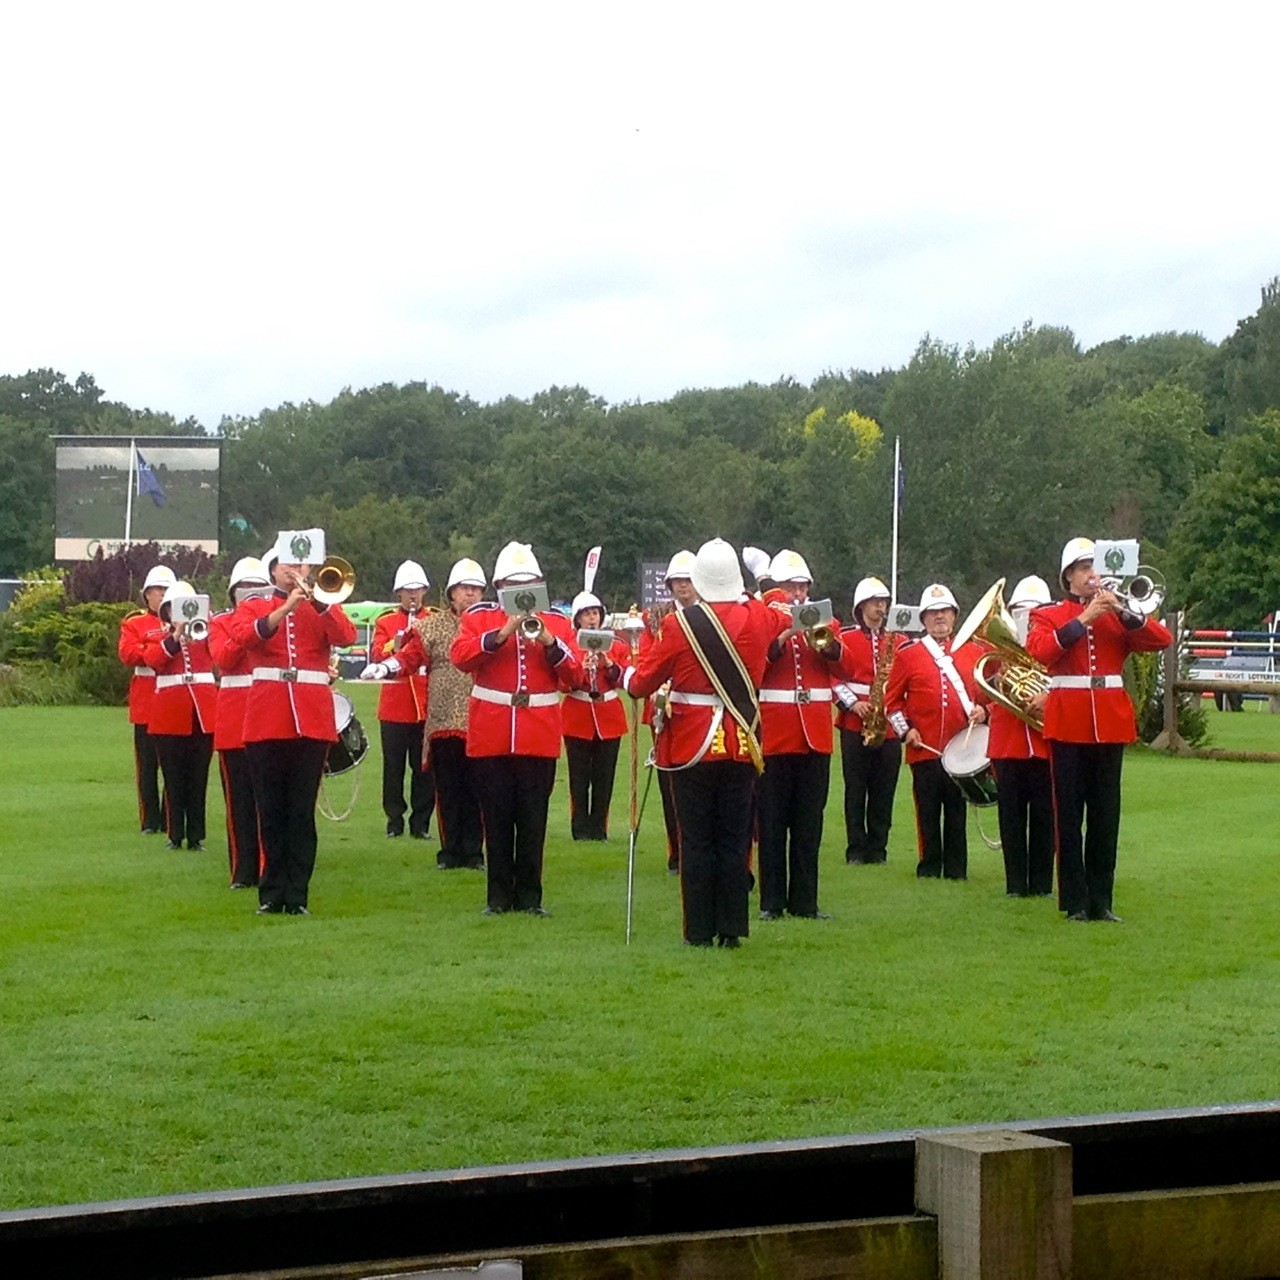 Military Marching Band at the Large Events